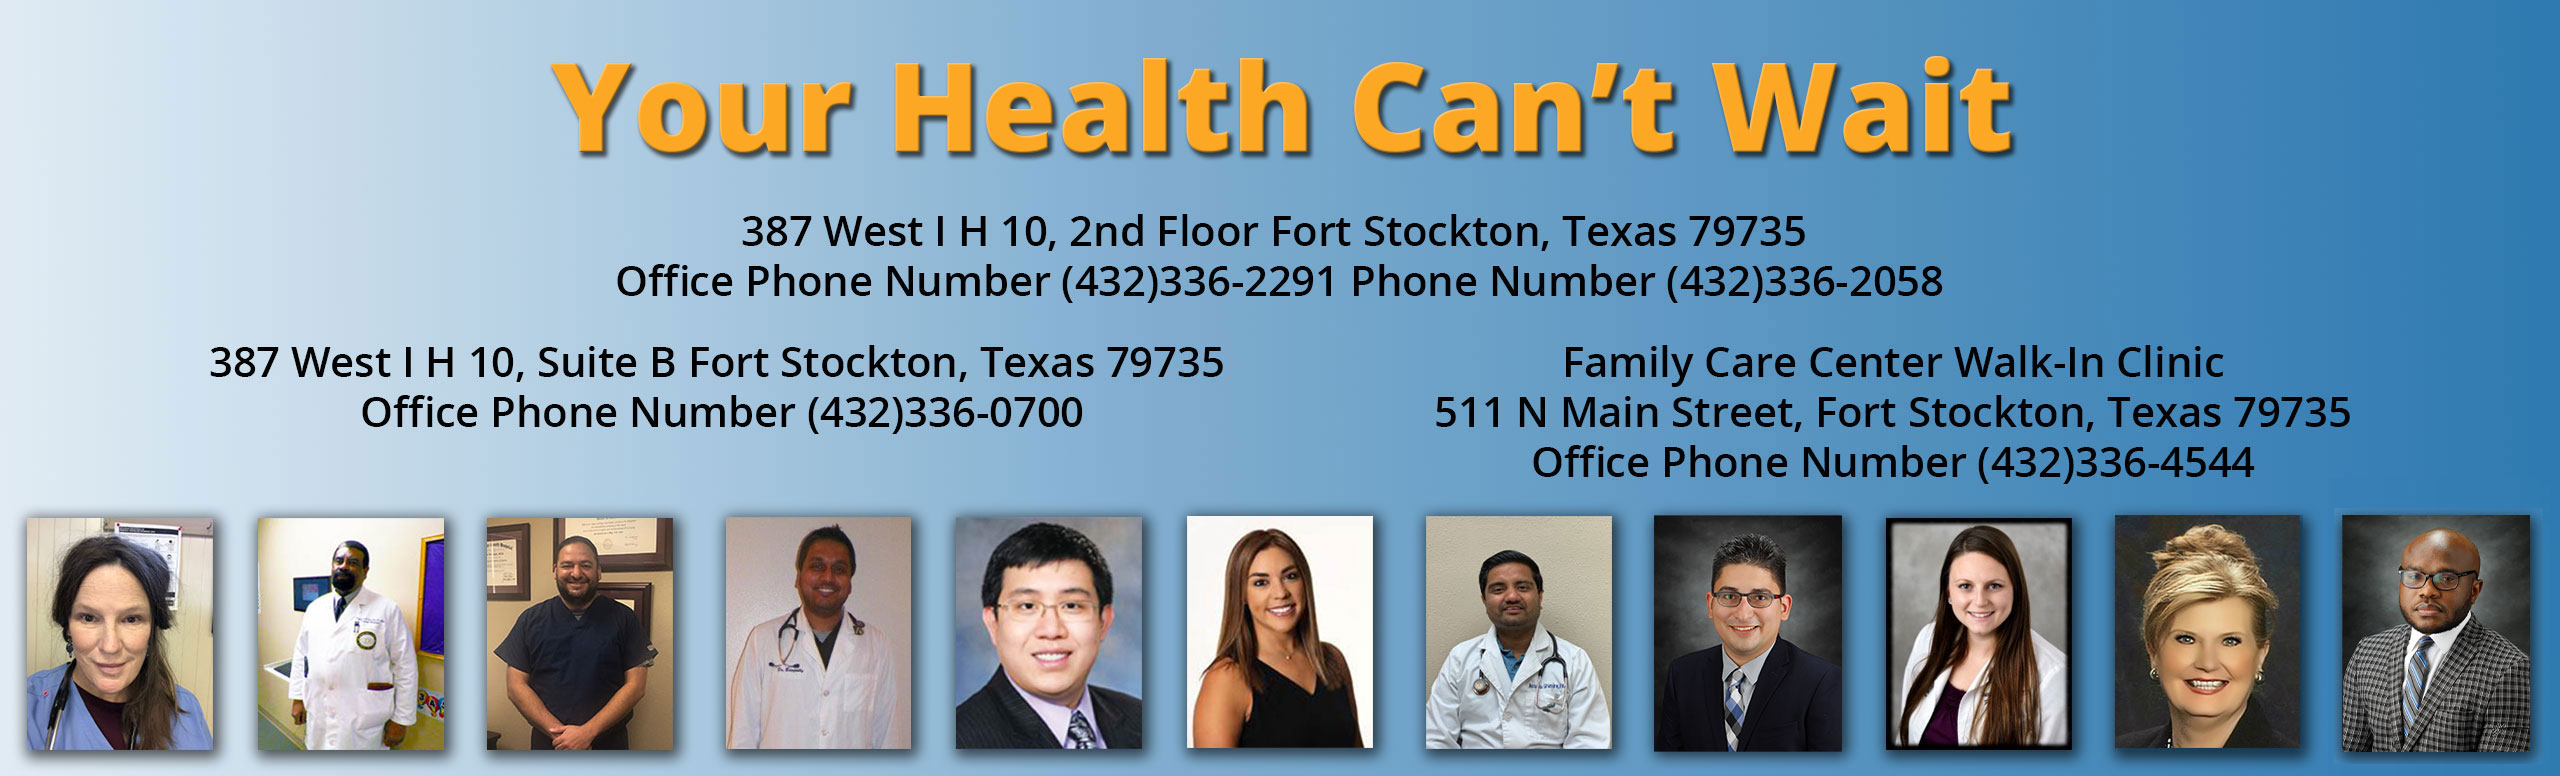 Your Health Can't Wait 387 West I H 10, 2nd Floor Fort Stockton, Texas 79735   Office Phone Number (432)336-2291 Phone Number (432)336-2058     387 West I H 10, Suite B Fort Stockton, Texas 79735 Office Phone Number (432)336-0700     Family Care Center Walk-In Clinic  511 N Main Street, Fort Stockton, Texas 79735  Office Phone Number (432)336-4544